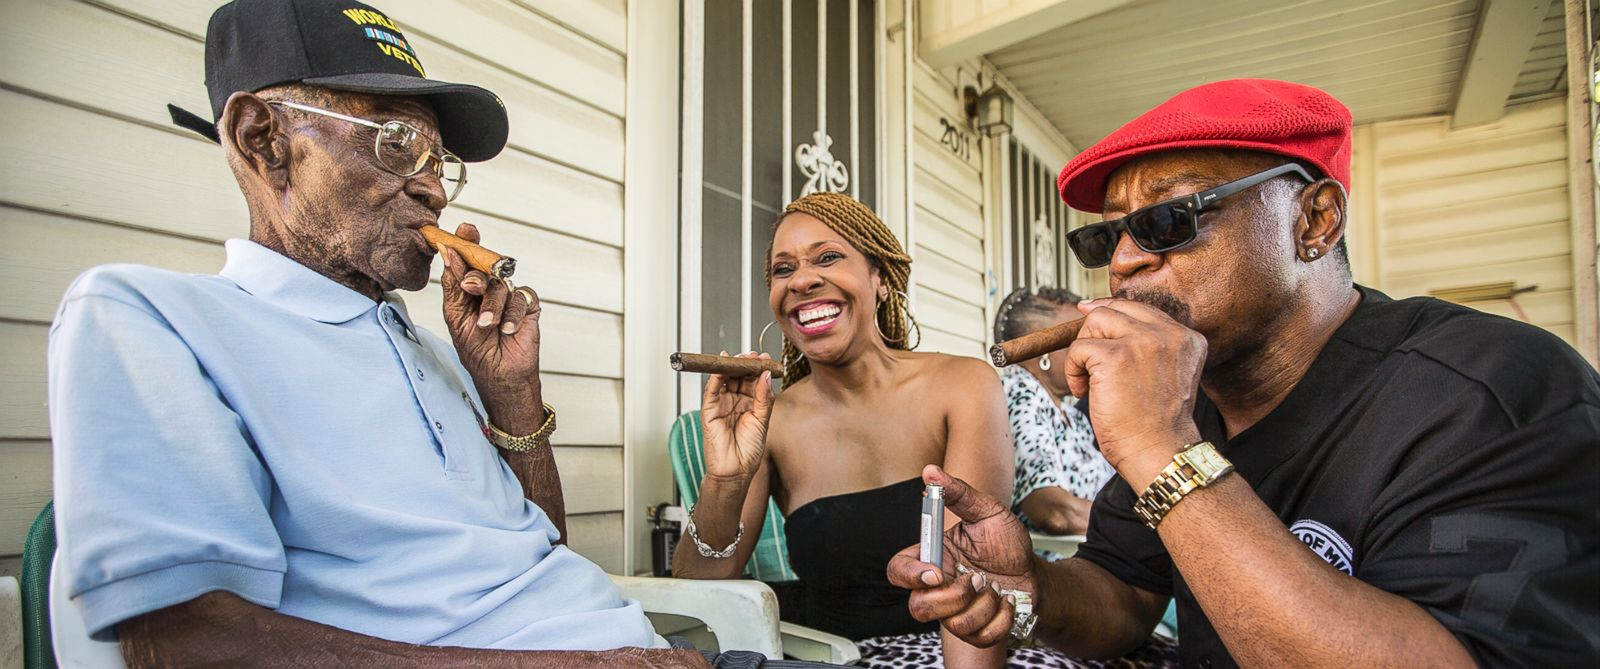 PHOTO: Richard Overton, left, smokes a cigar with neighborhood friends Donna Shorts, center, and Martin Wilford, right, on May 3, 2015 in Austin, Texas.